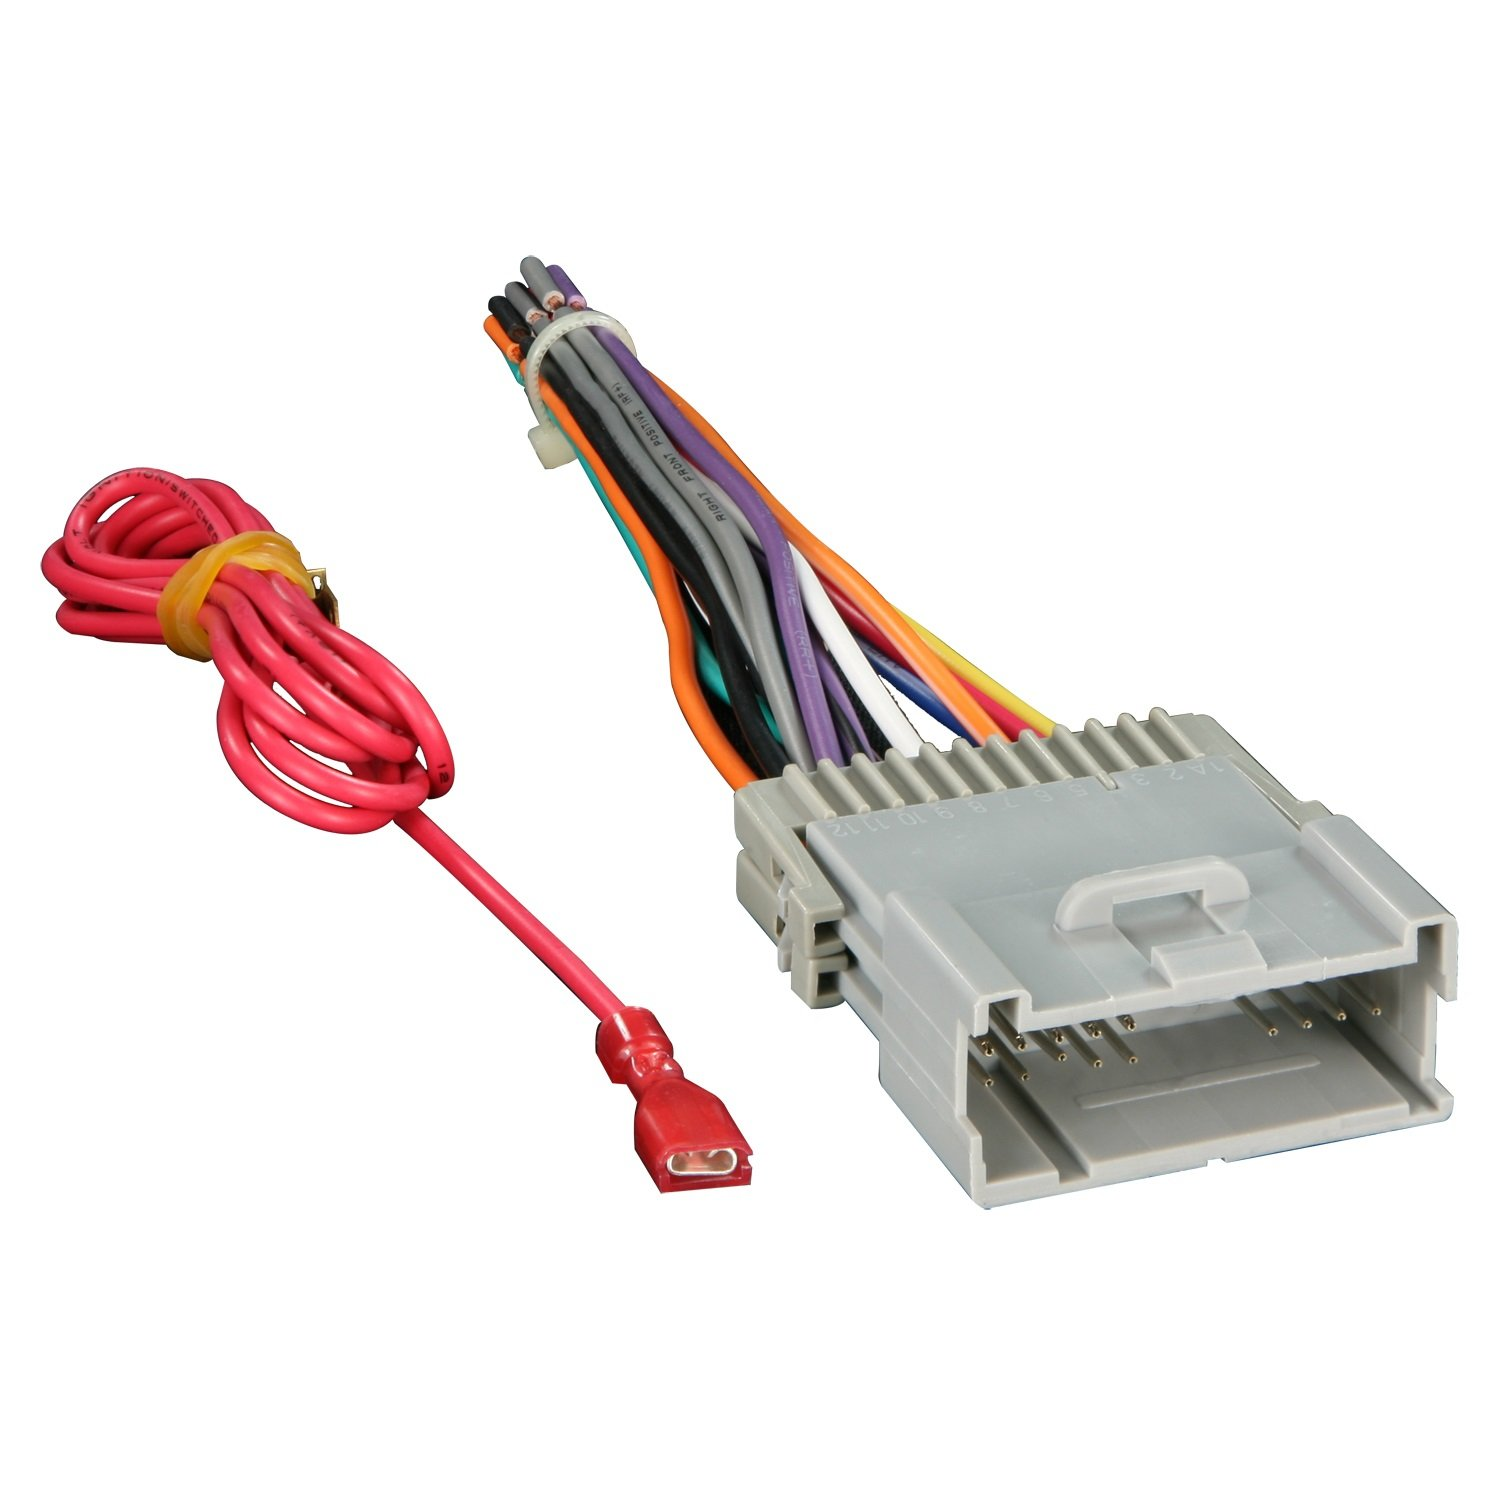 61eewxp9orL._SL1500_ amazon com metra 70 2003 radio wiring harness for gm 98 08 2005 chevy colorado radio wiring harness at crackthecode.co